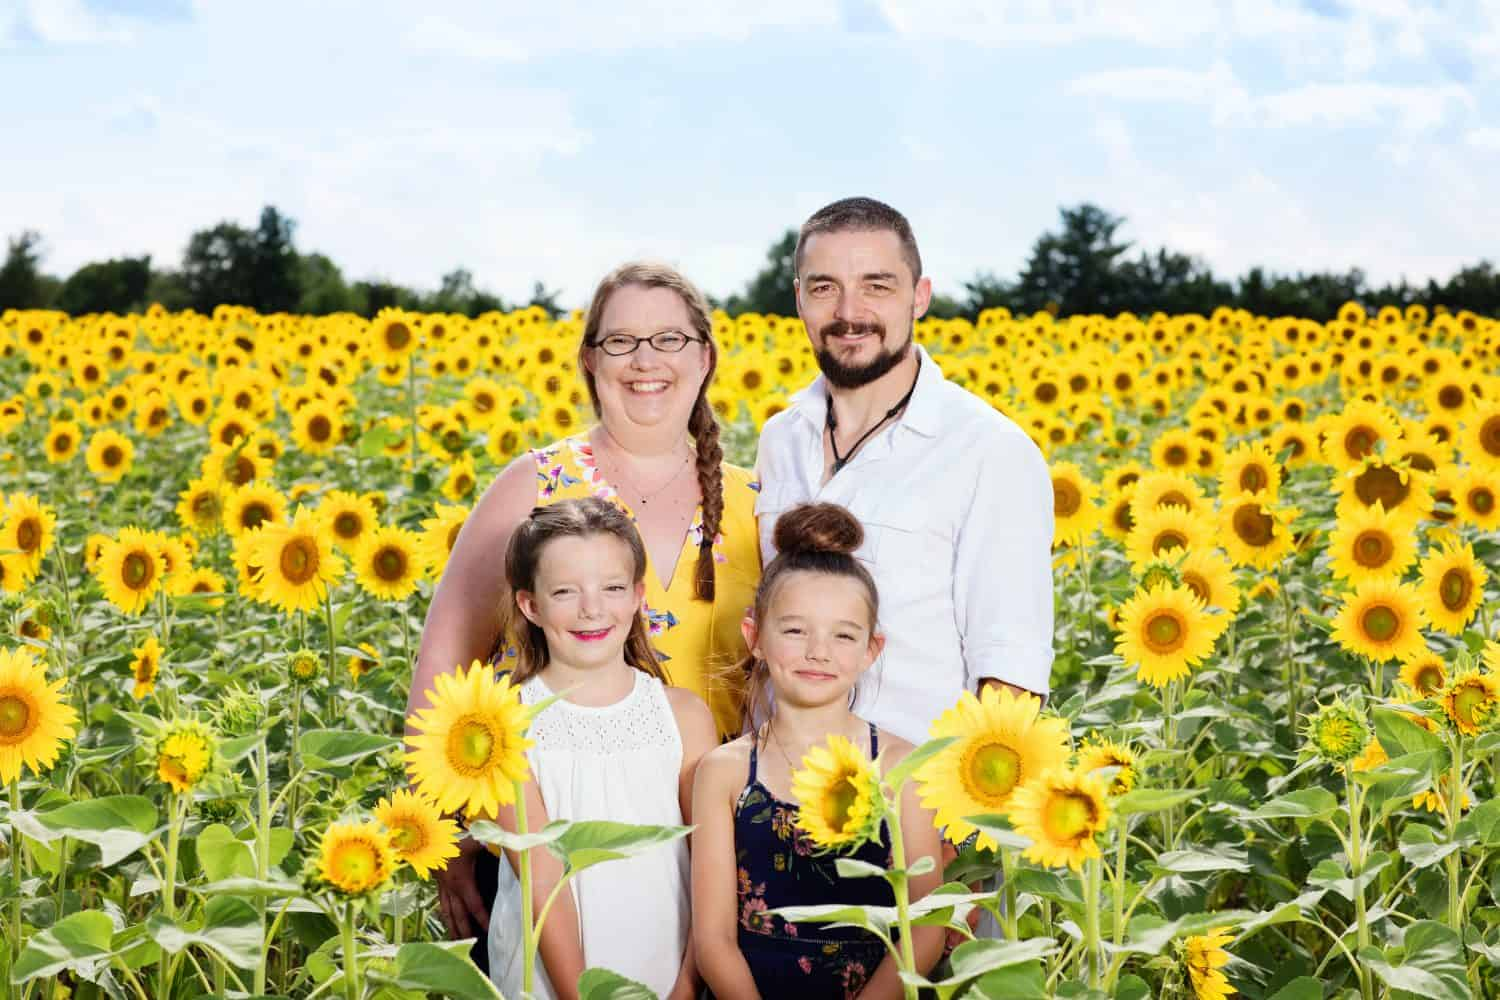 family pictures taken in a sunflower field.